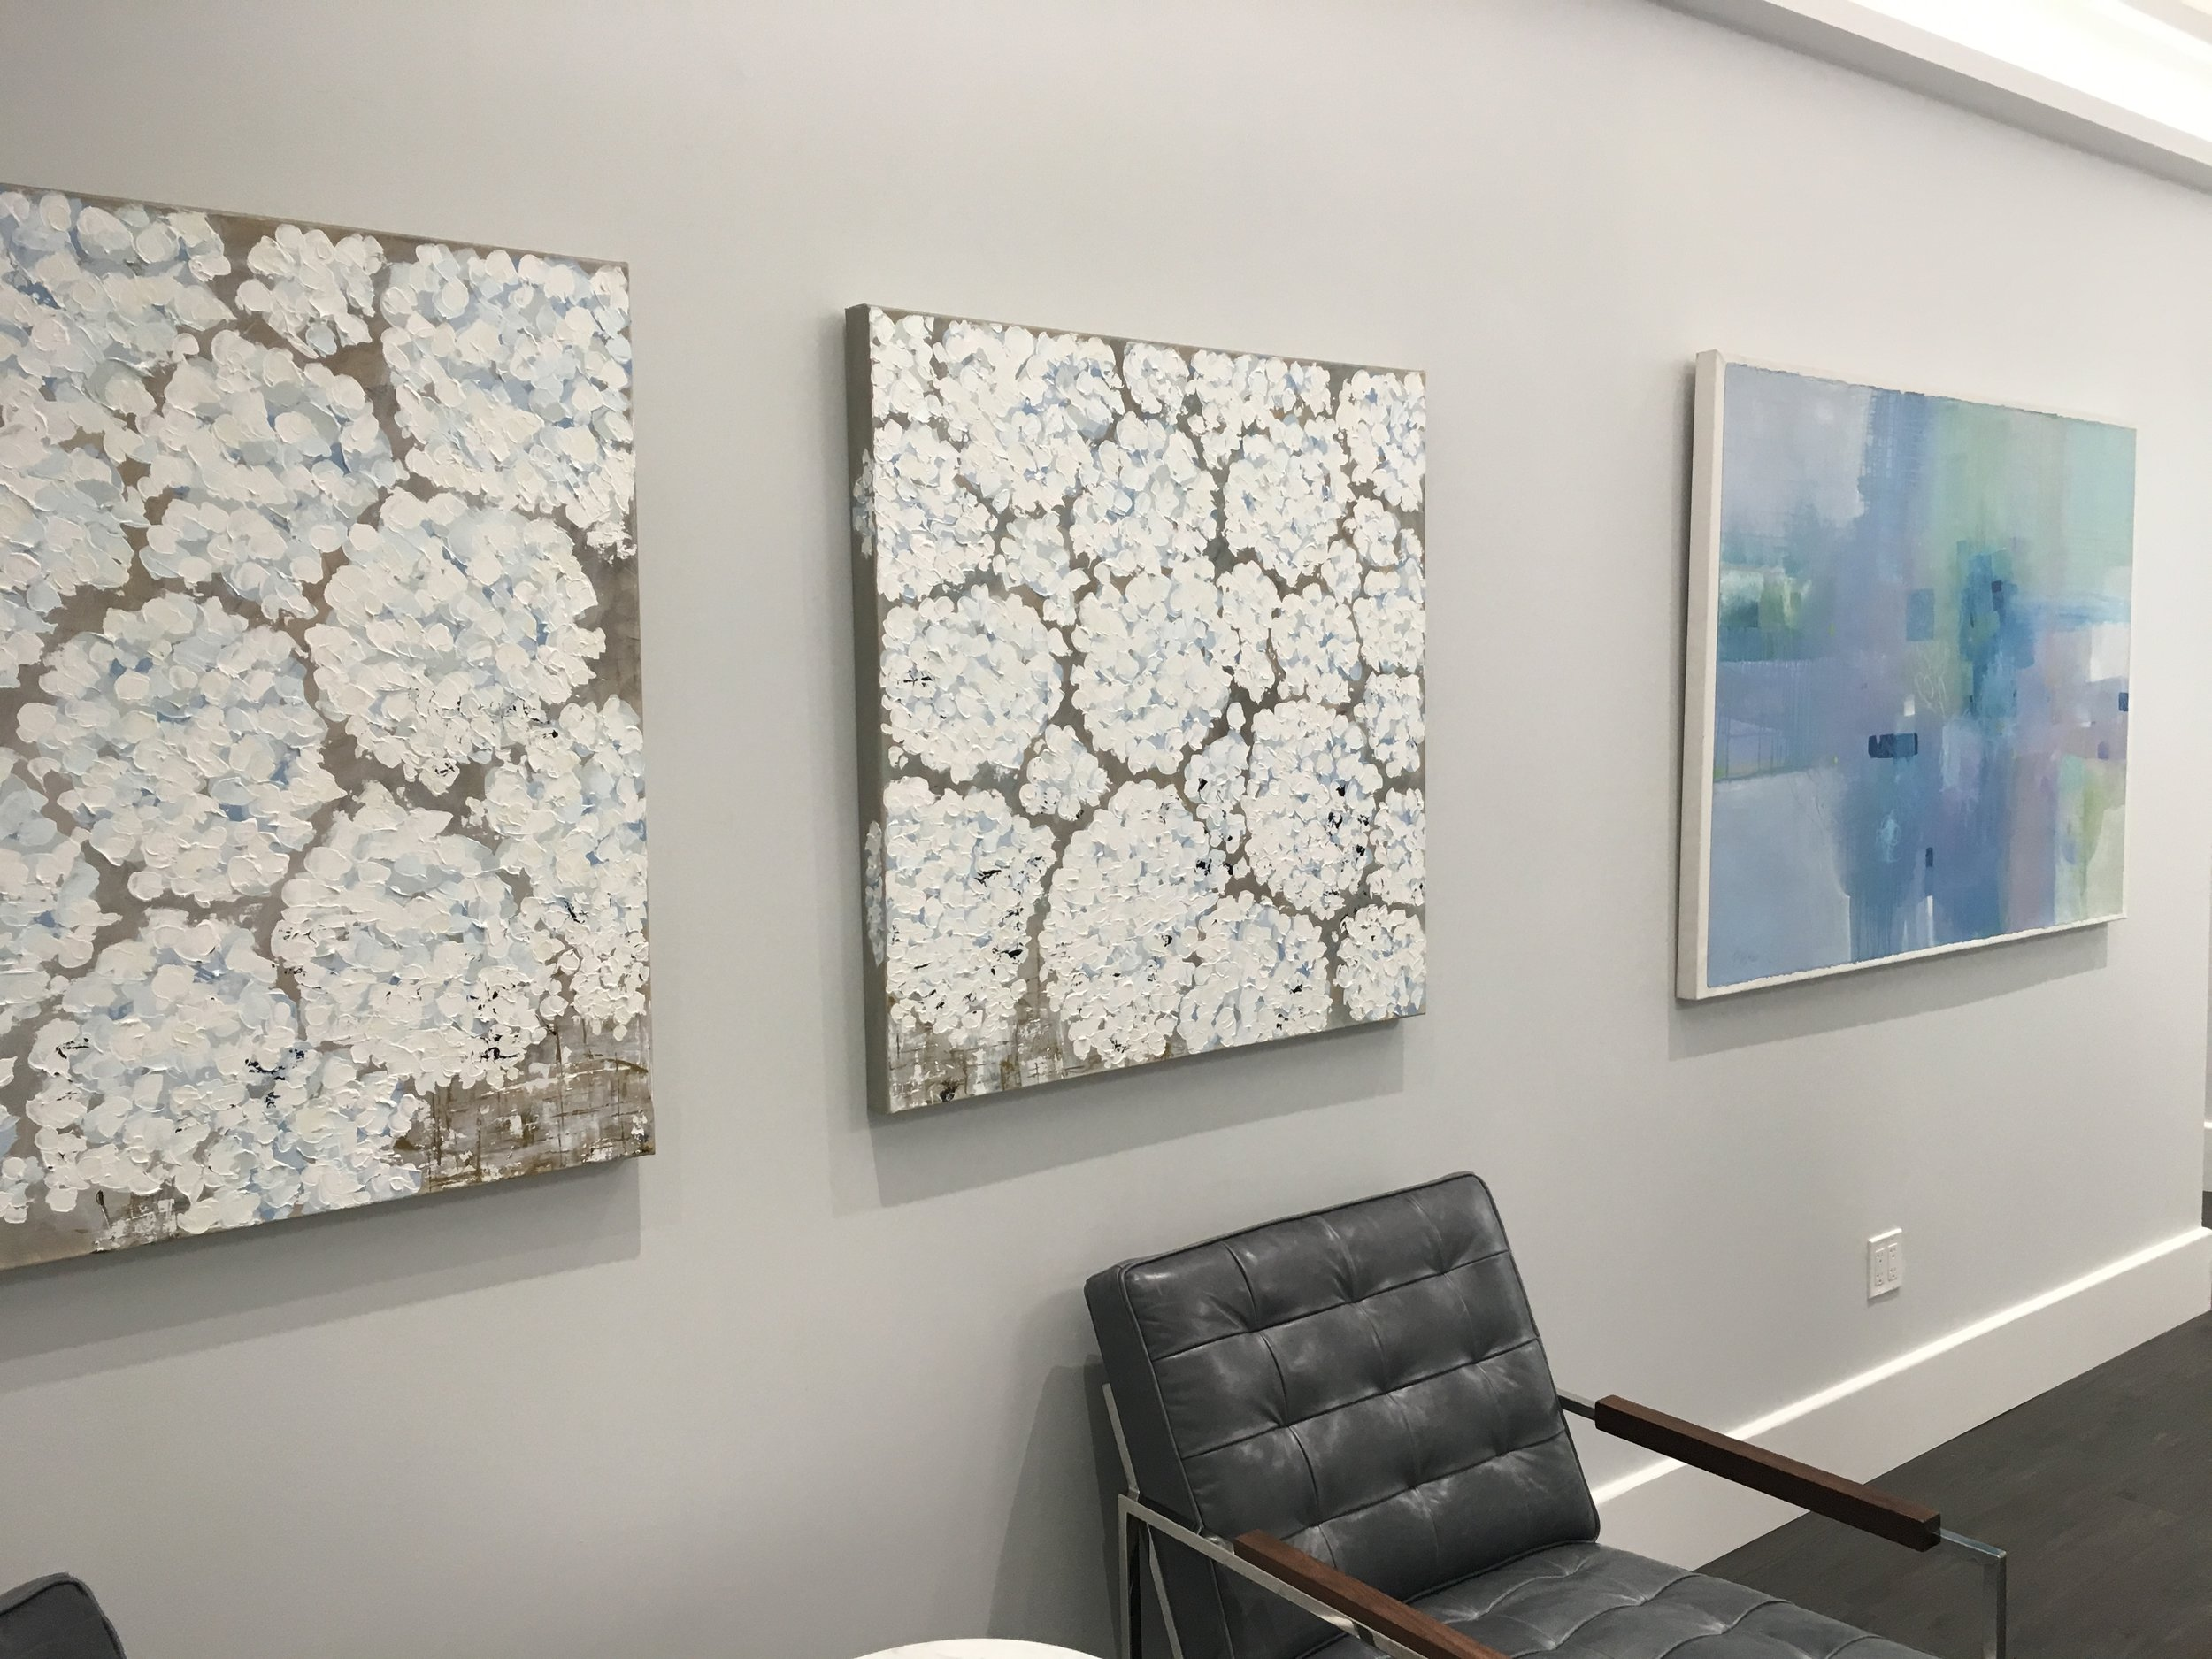 Works from left to right: A diptych by Kim Romero and watercolor by Penny Putnam.